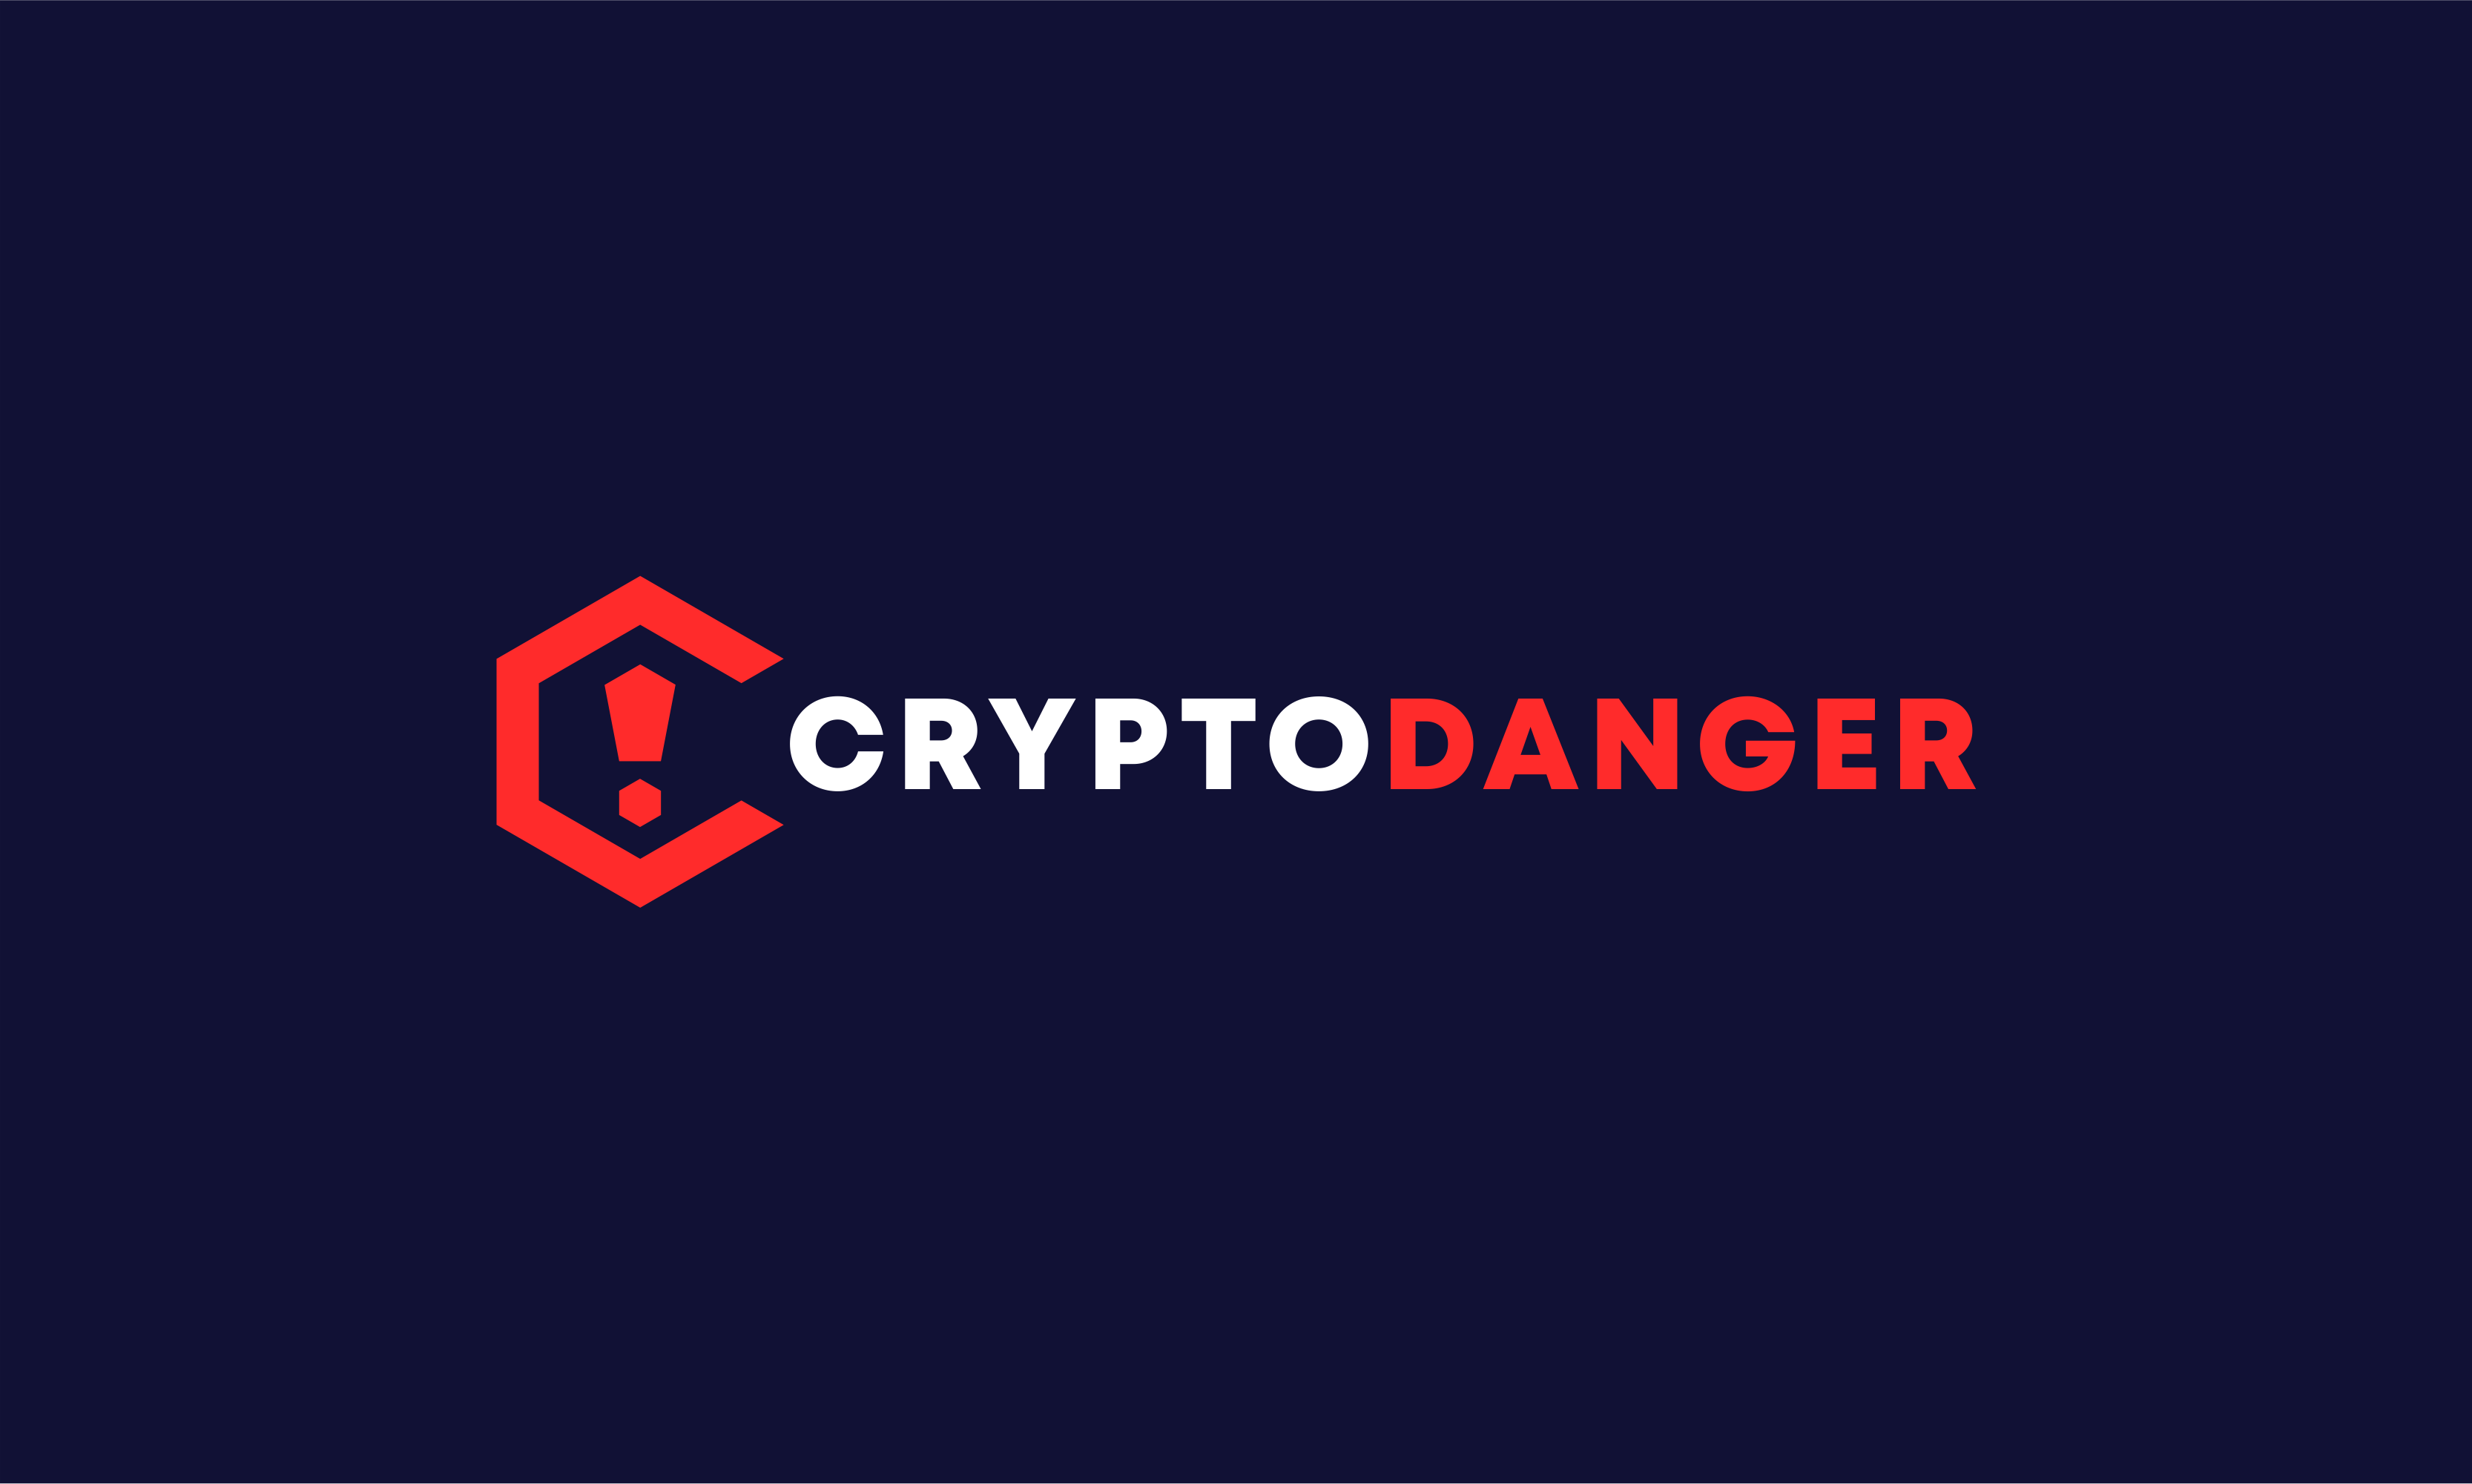 Cryptodanger - Cryptocurrency company name for sale